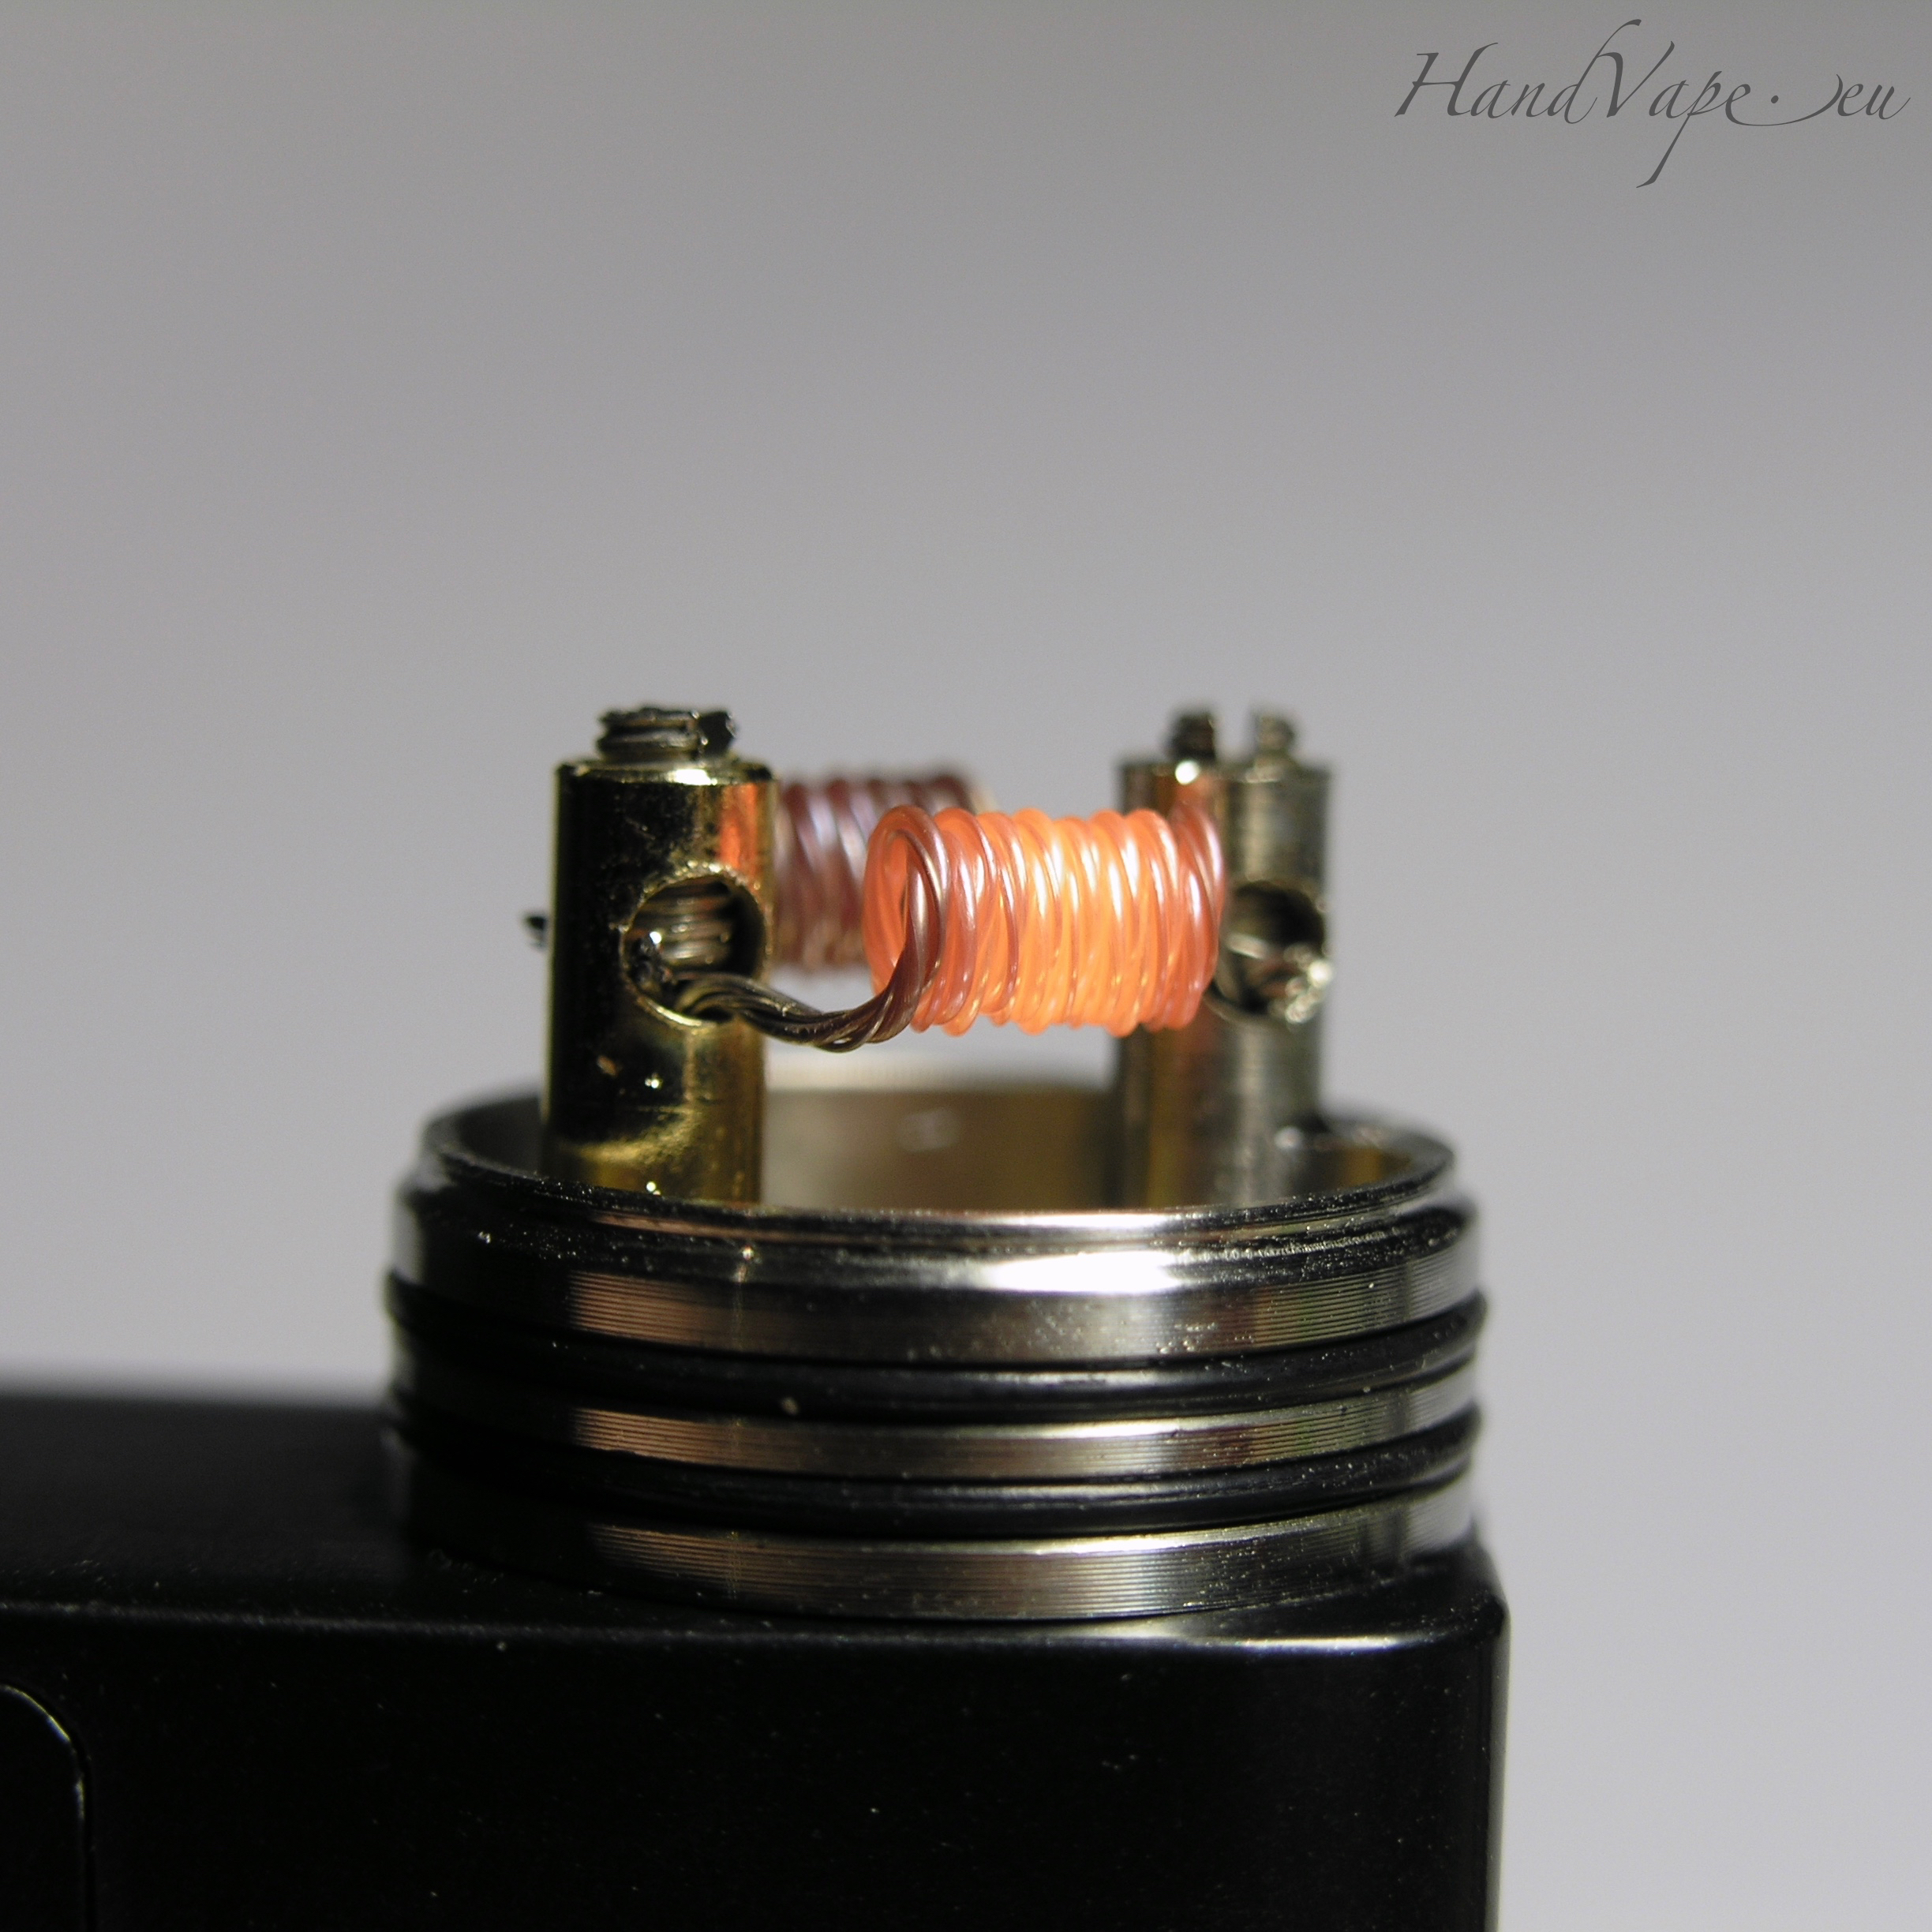 Helix Wire Coil (5 pcs.) | HandVape.eu :: Made by hand in Estonia